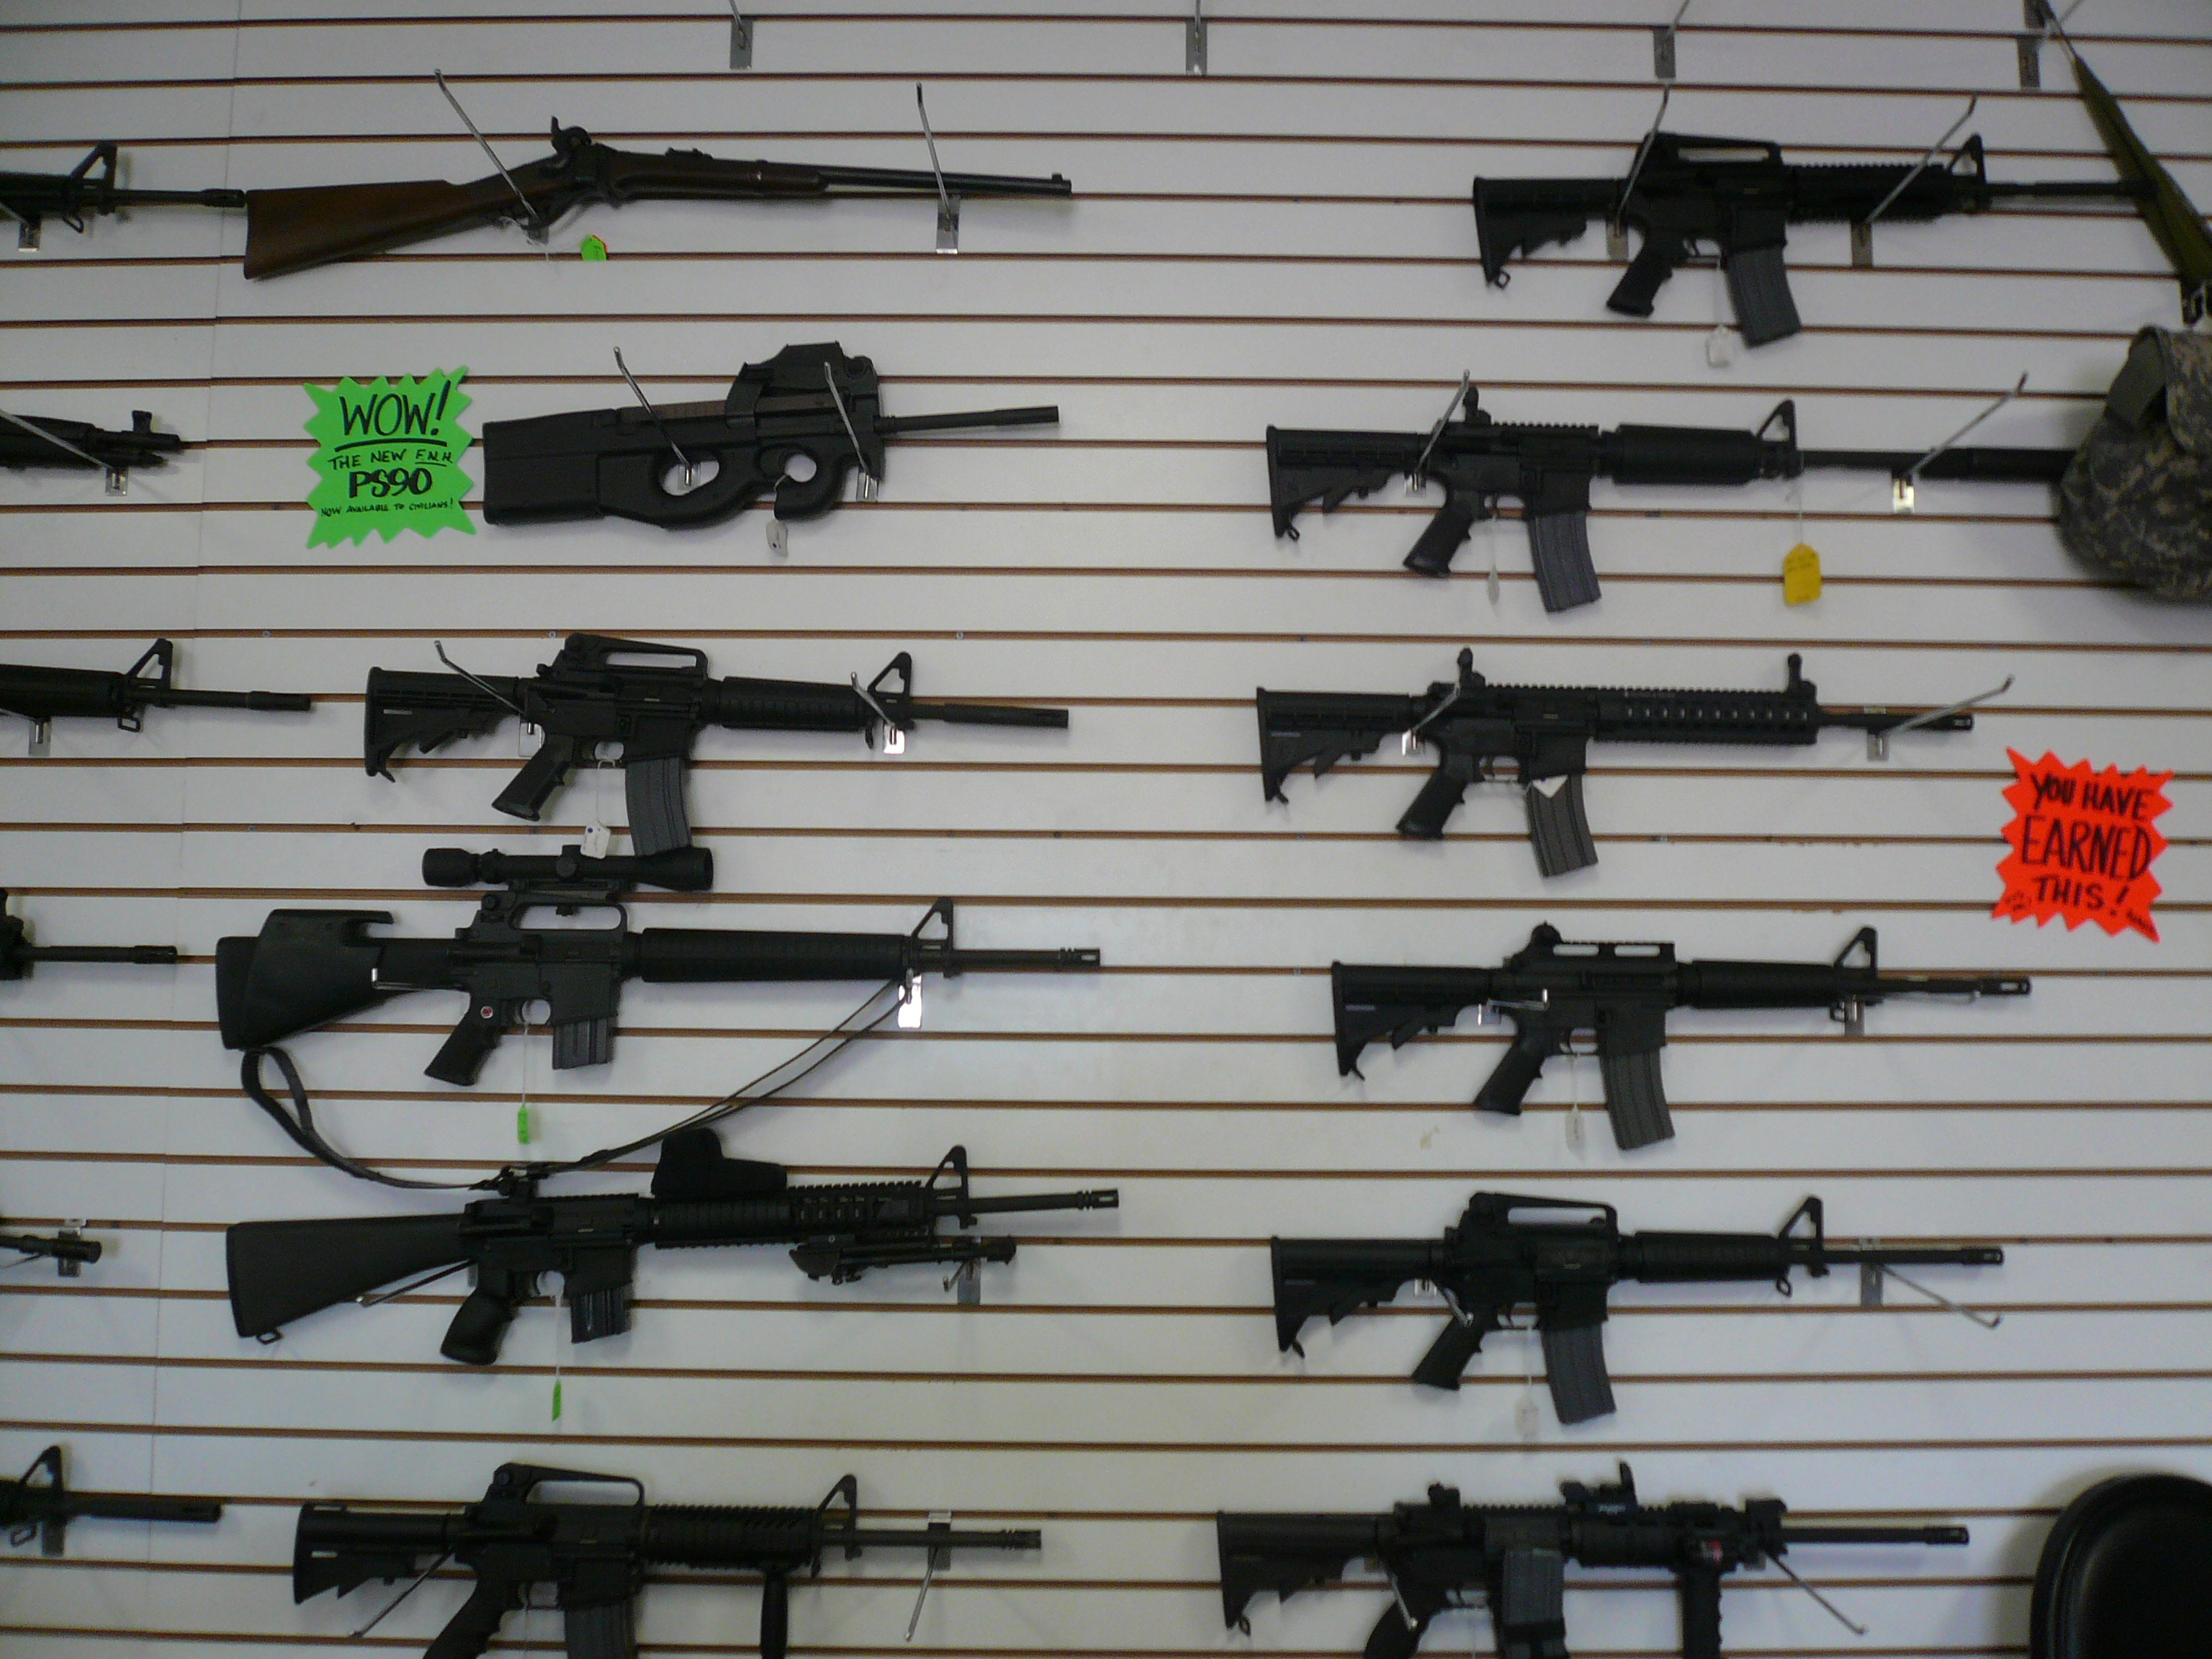 Description automatic weapons at gun range, las vegas